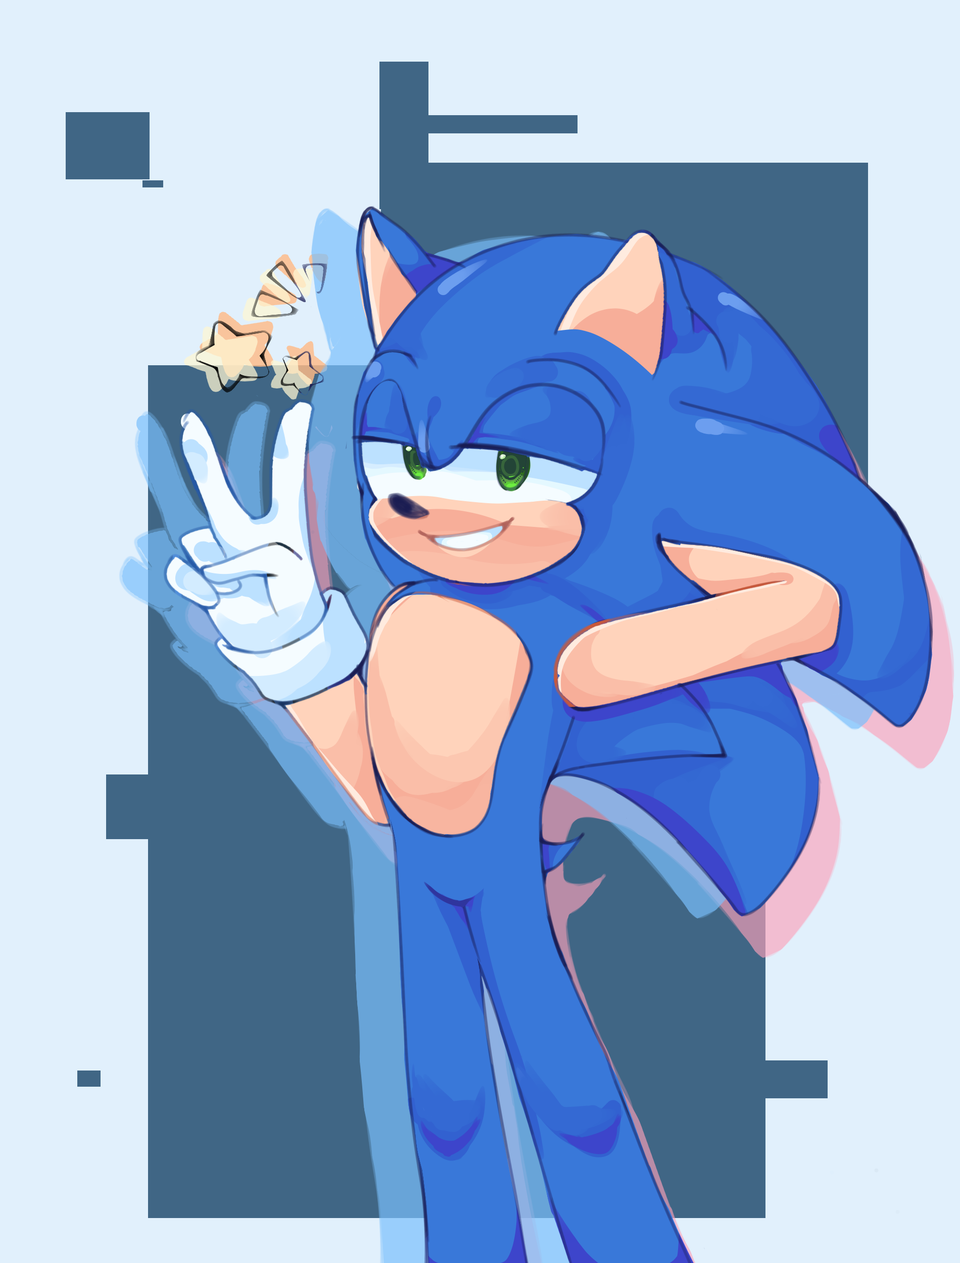 Oop- forgot to post lol. Here, have a happy boi Illust of Infinite stylez medibangpaint cool blue infinitestylez sega ihwfuw Sonic